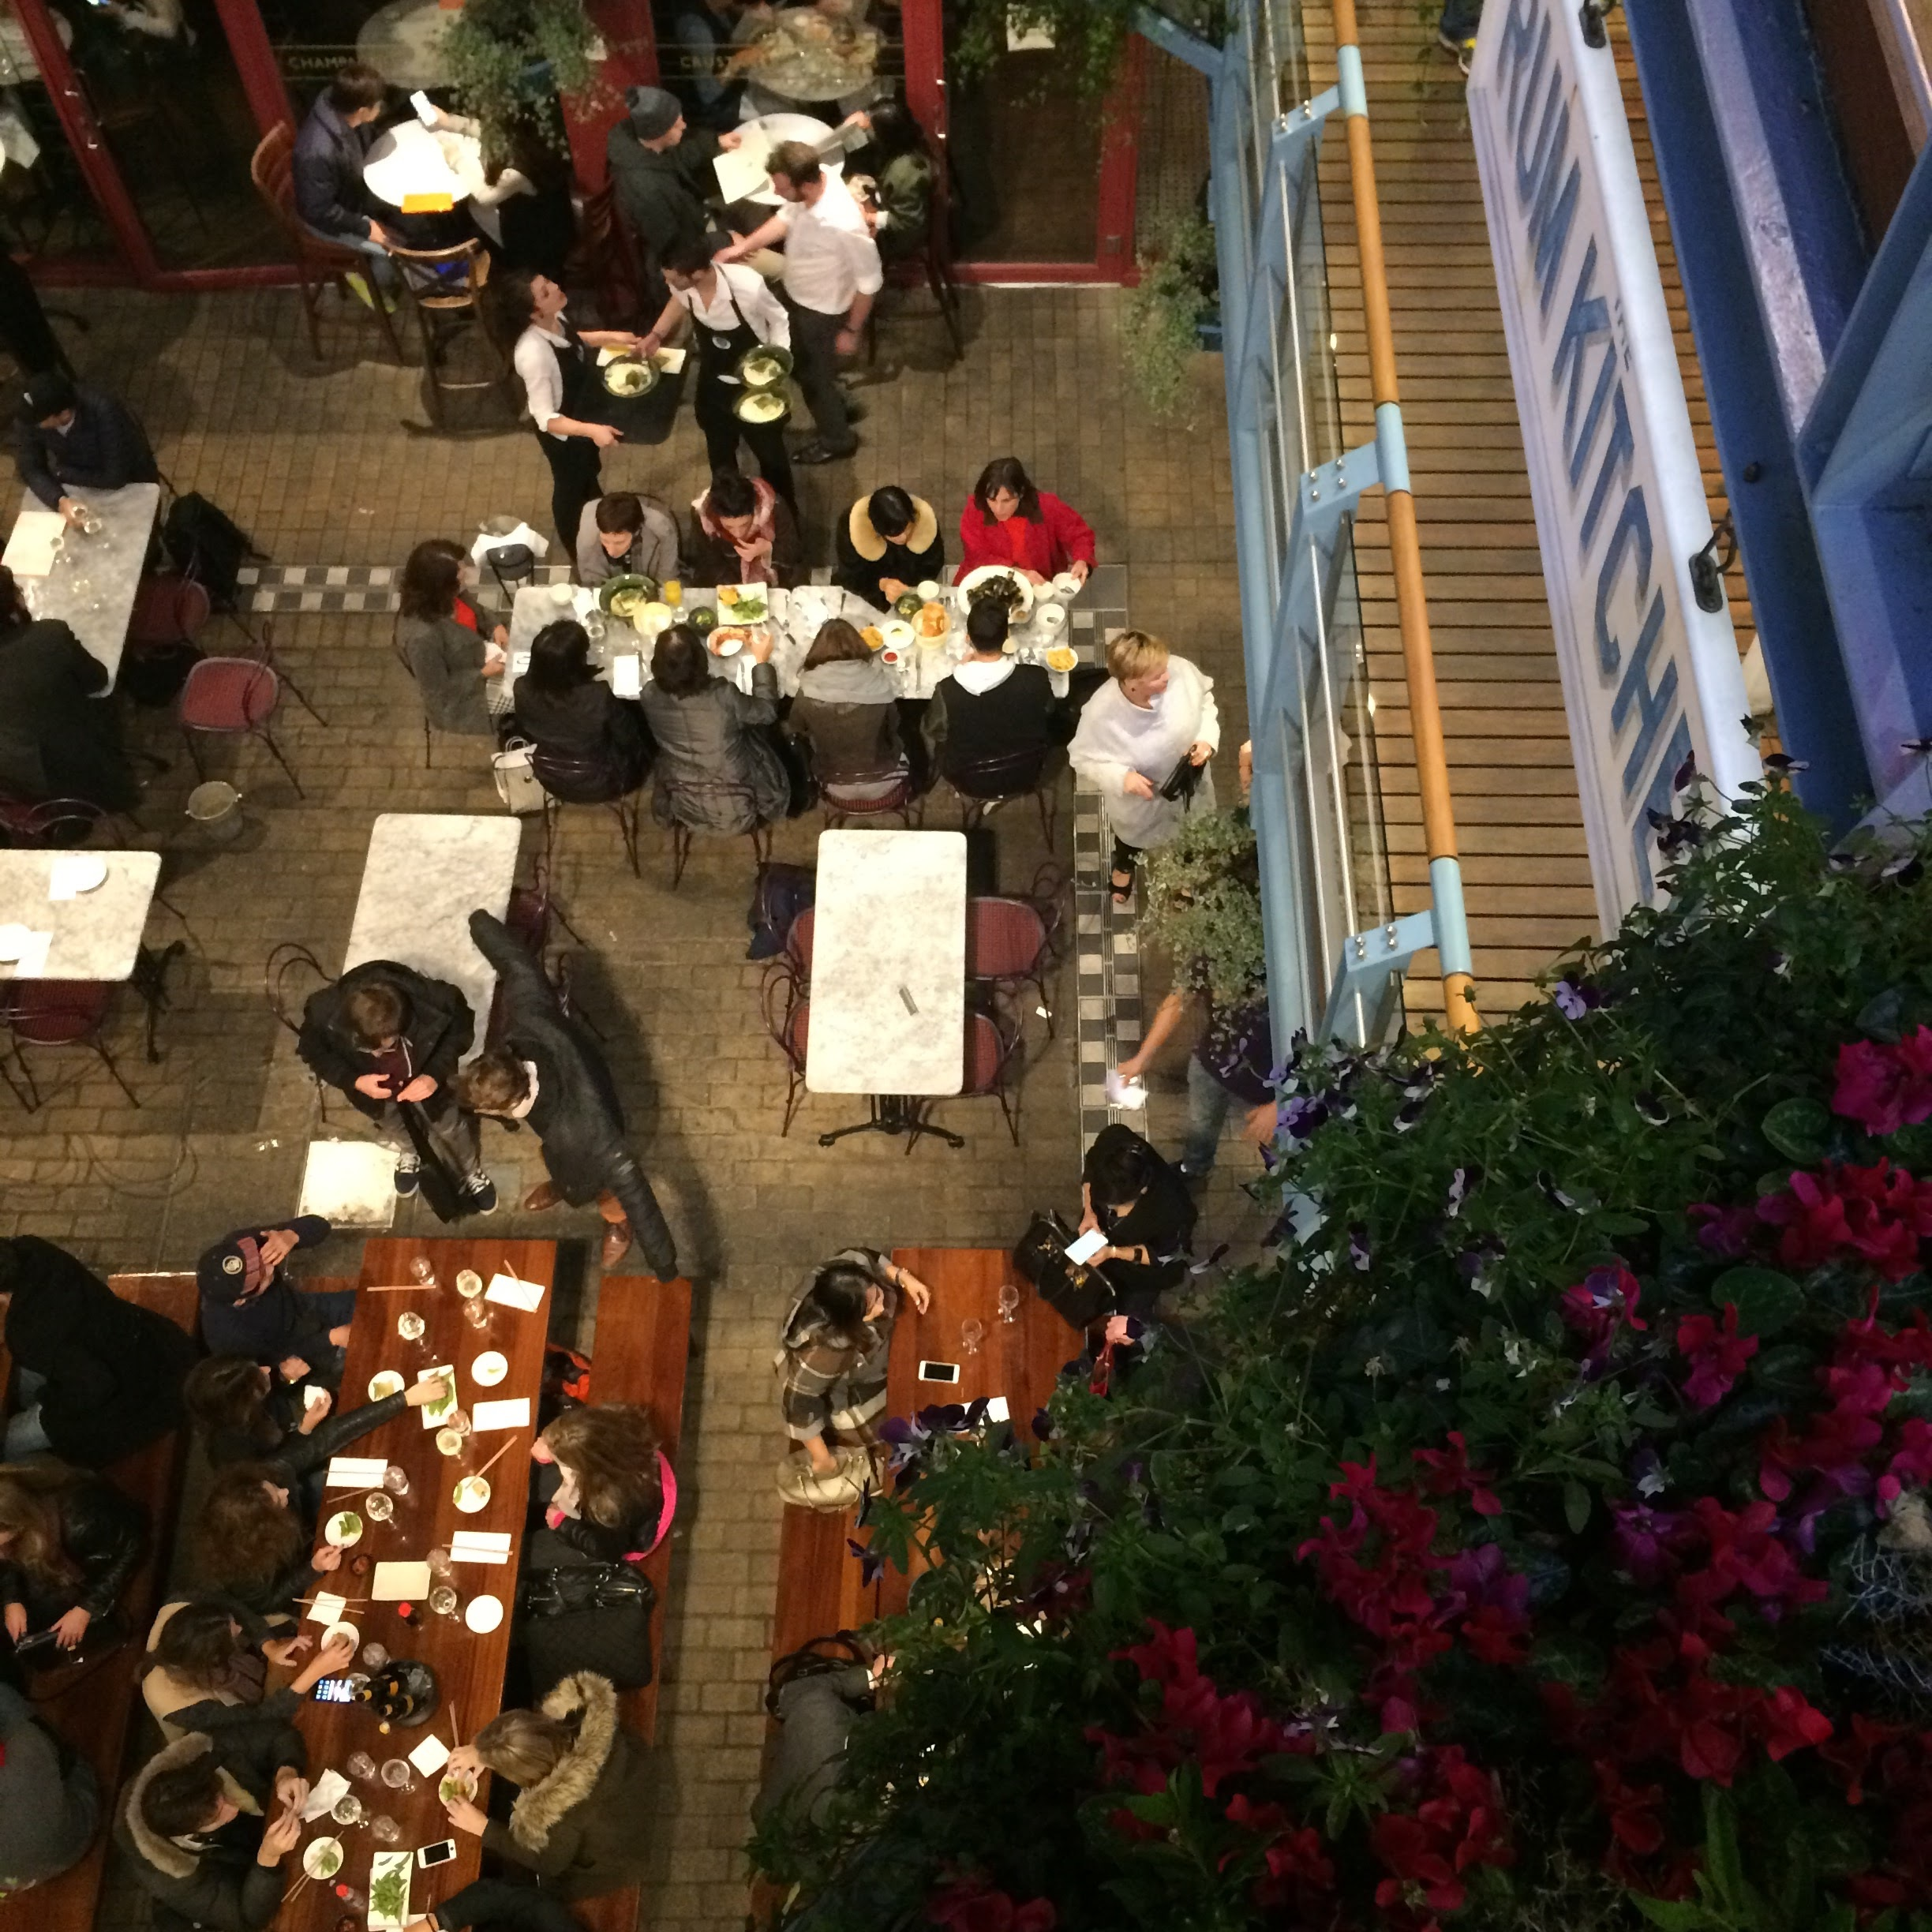 A busy friday night in Kingly court